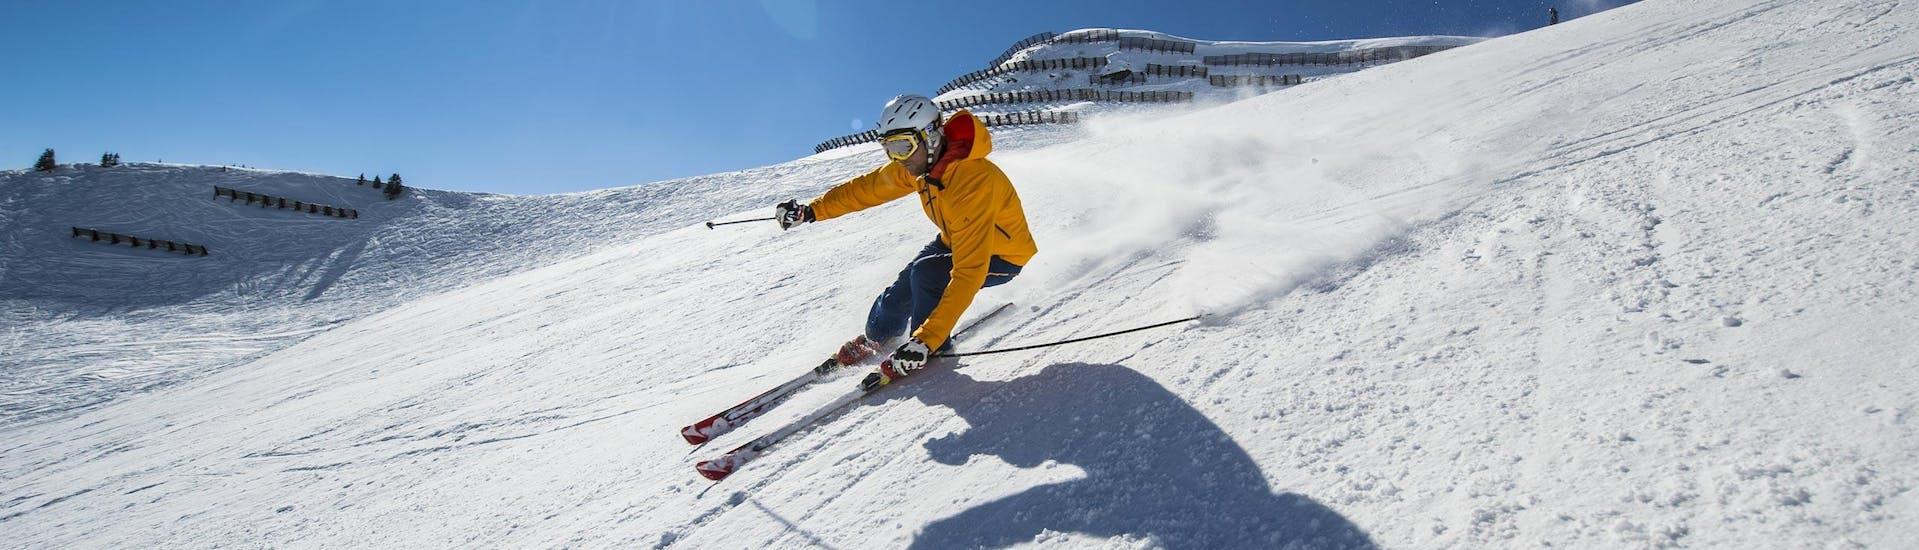 Ski Lessons for Adults - First Timer: A skier is skiing down a sunny ski slope while participating in an activity offered by Skischule Lienzer Dolomiten.